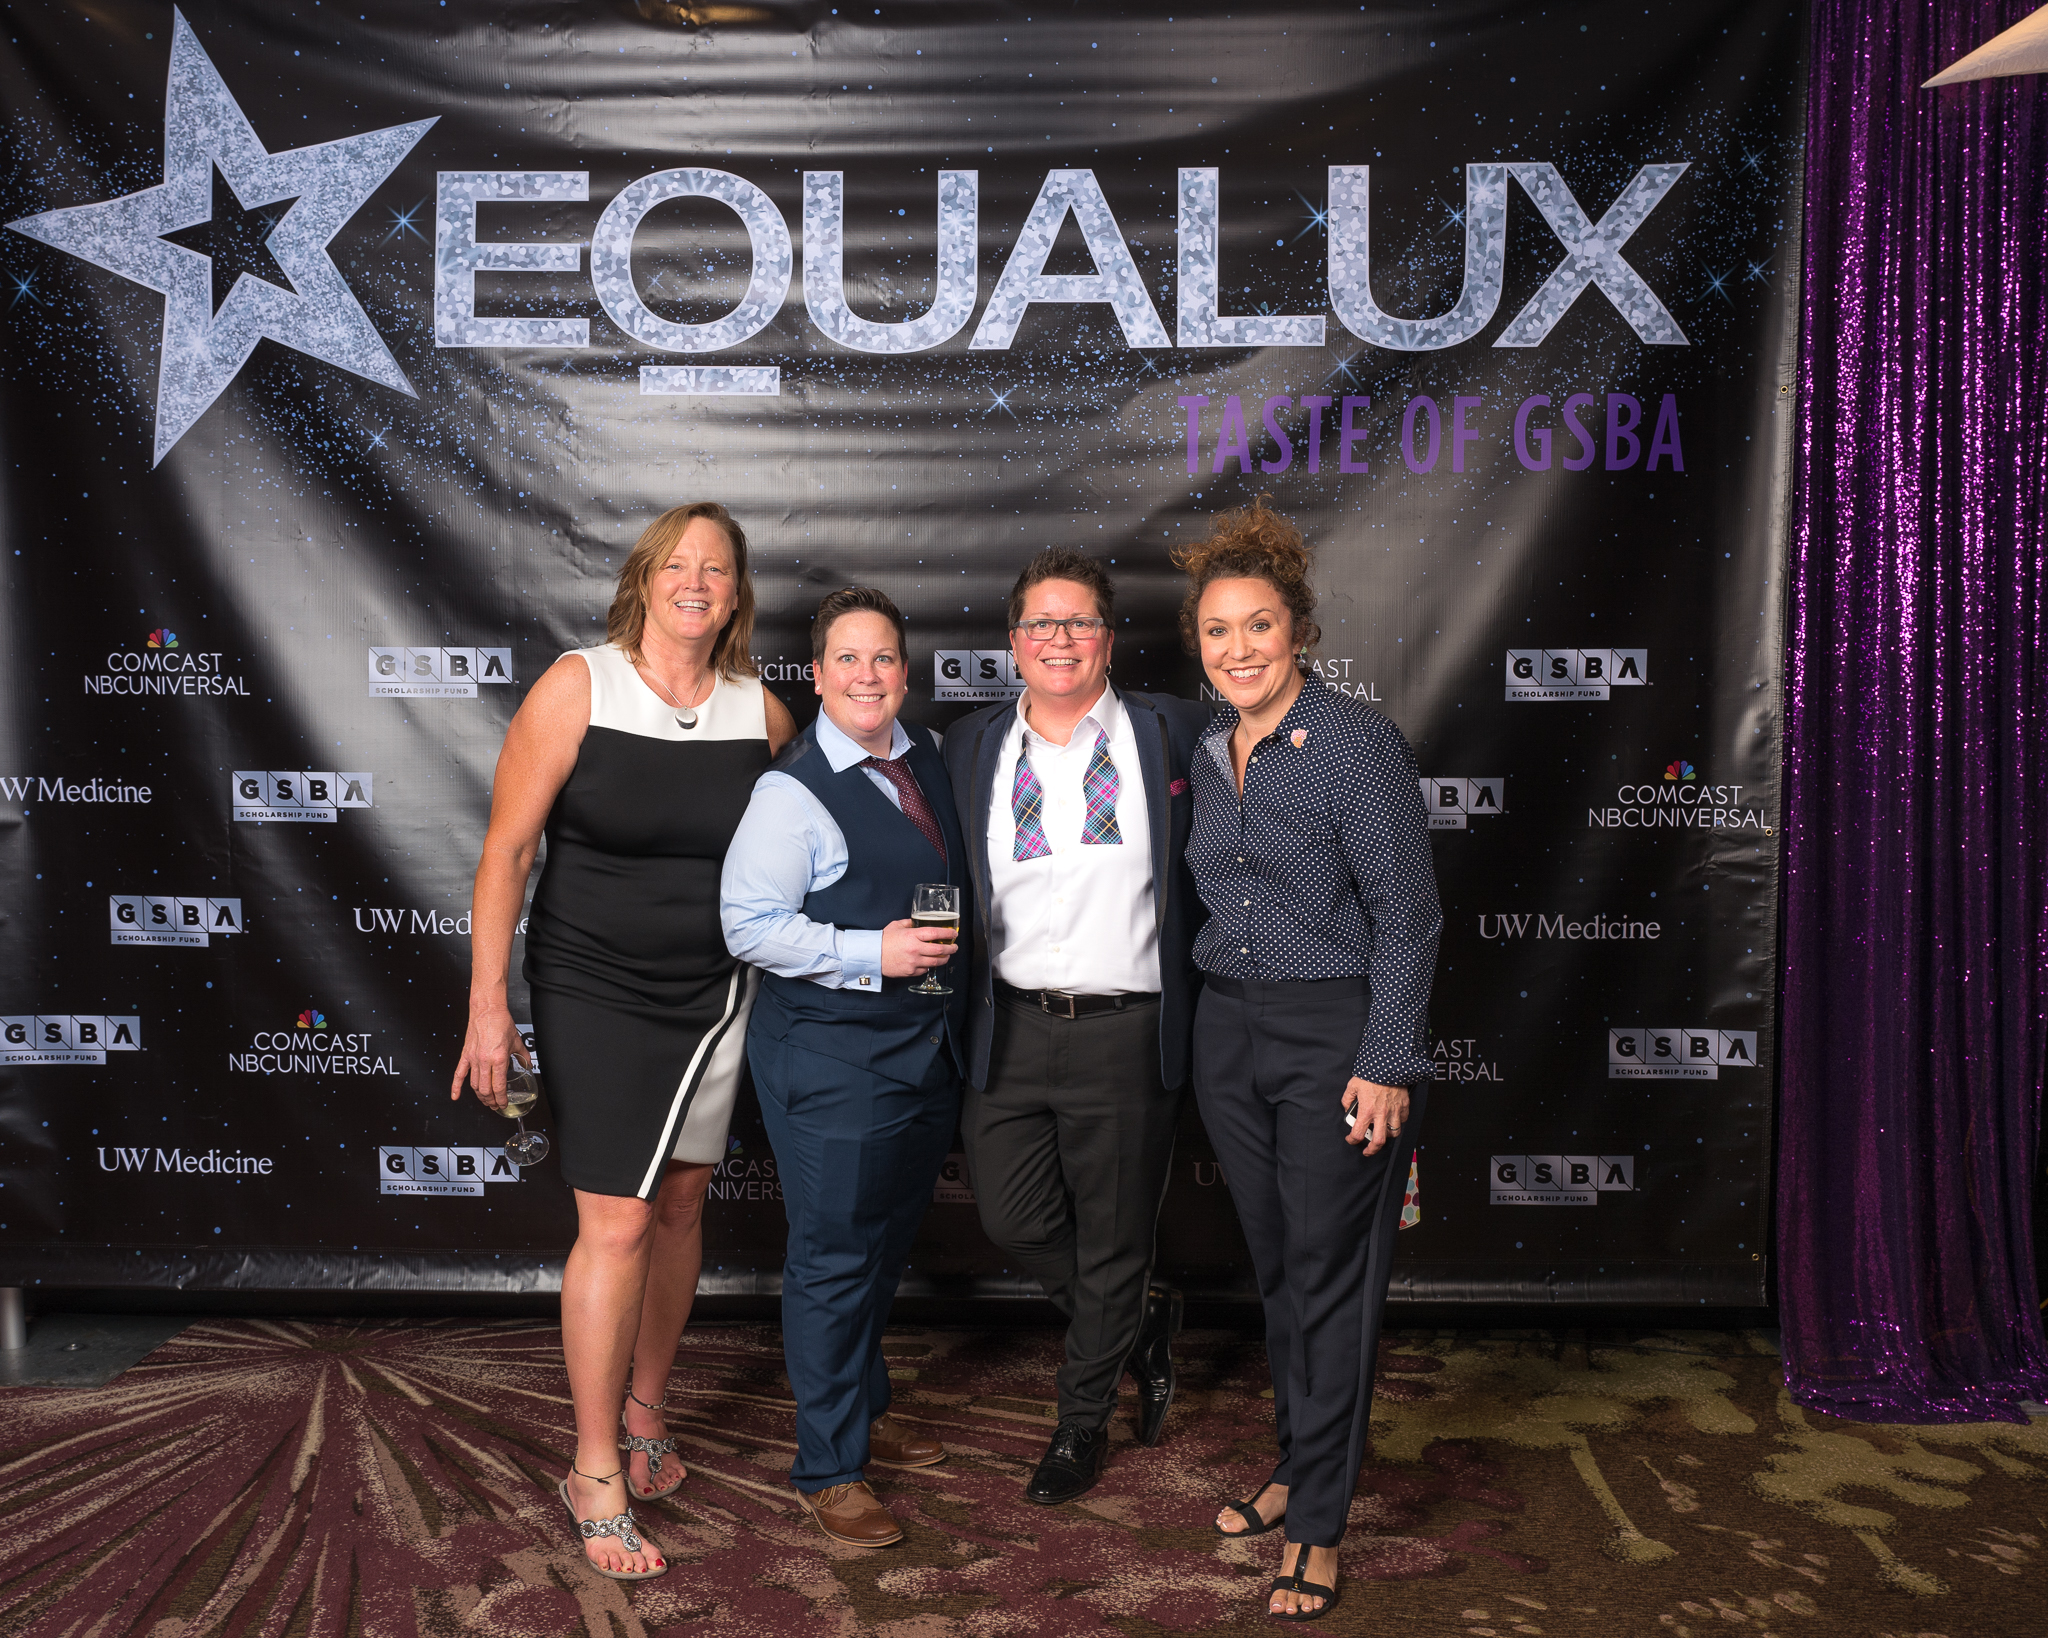 111718_GSBA EQUALUX at The Westin Seattle (Credit- Nate Gowdy)-148.jpg